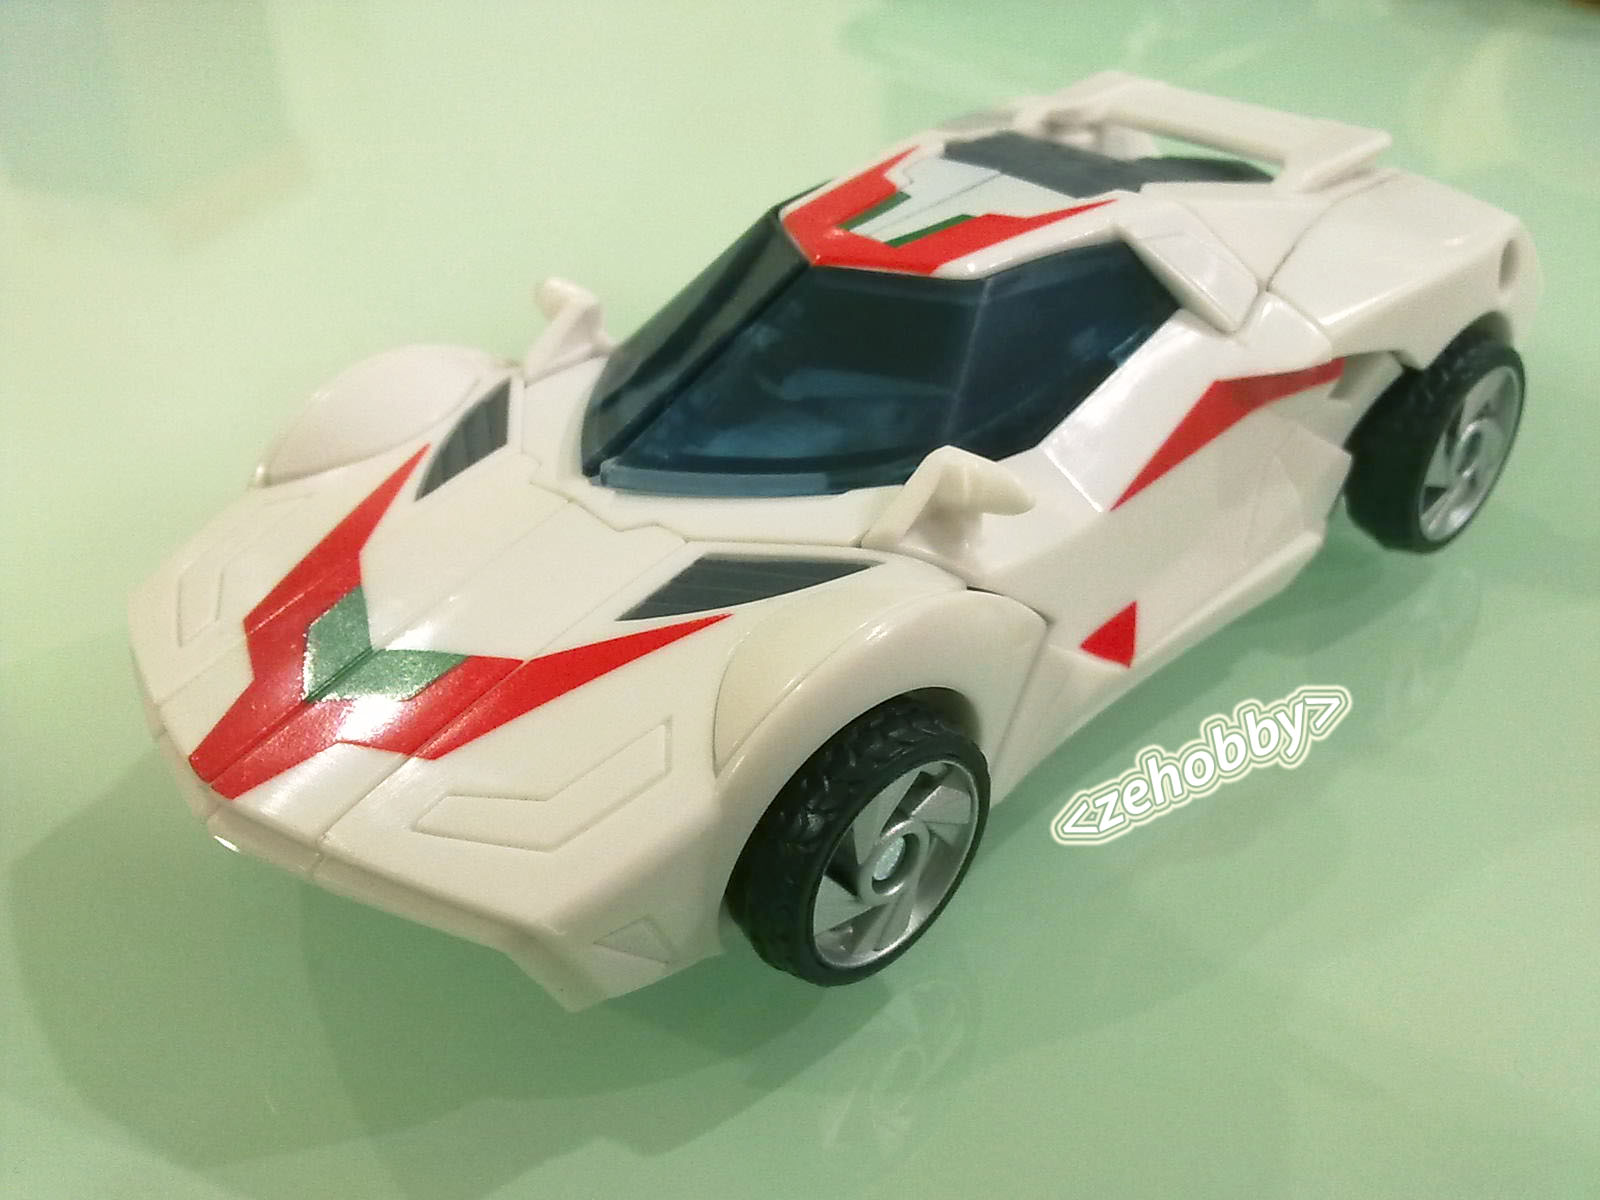 Transformers prime wheeljack car - photo#1